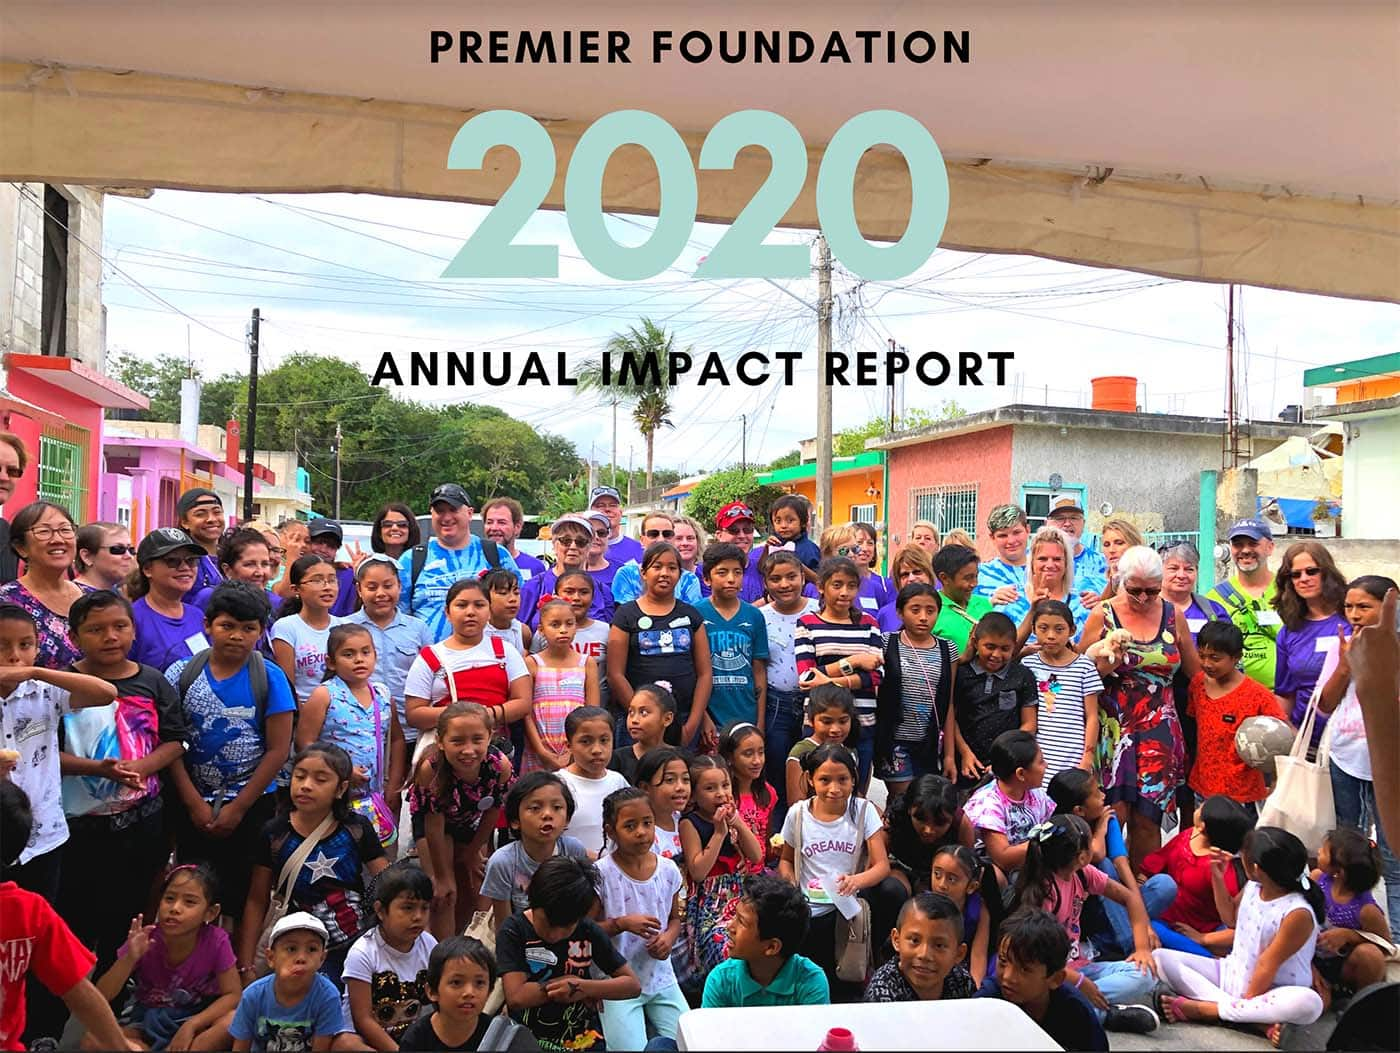 2020 Annual Impact Report Released